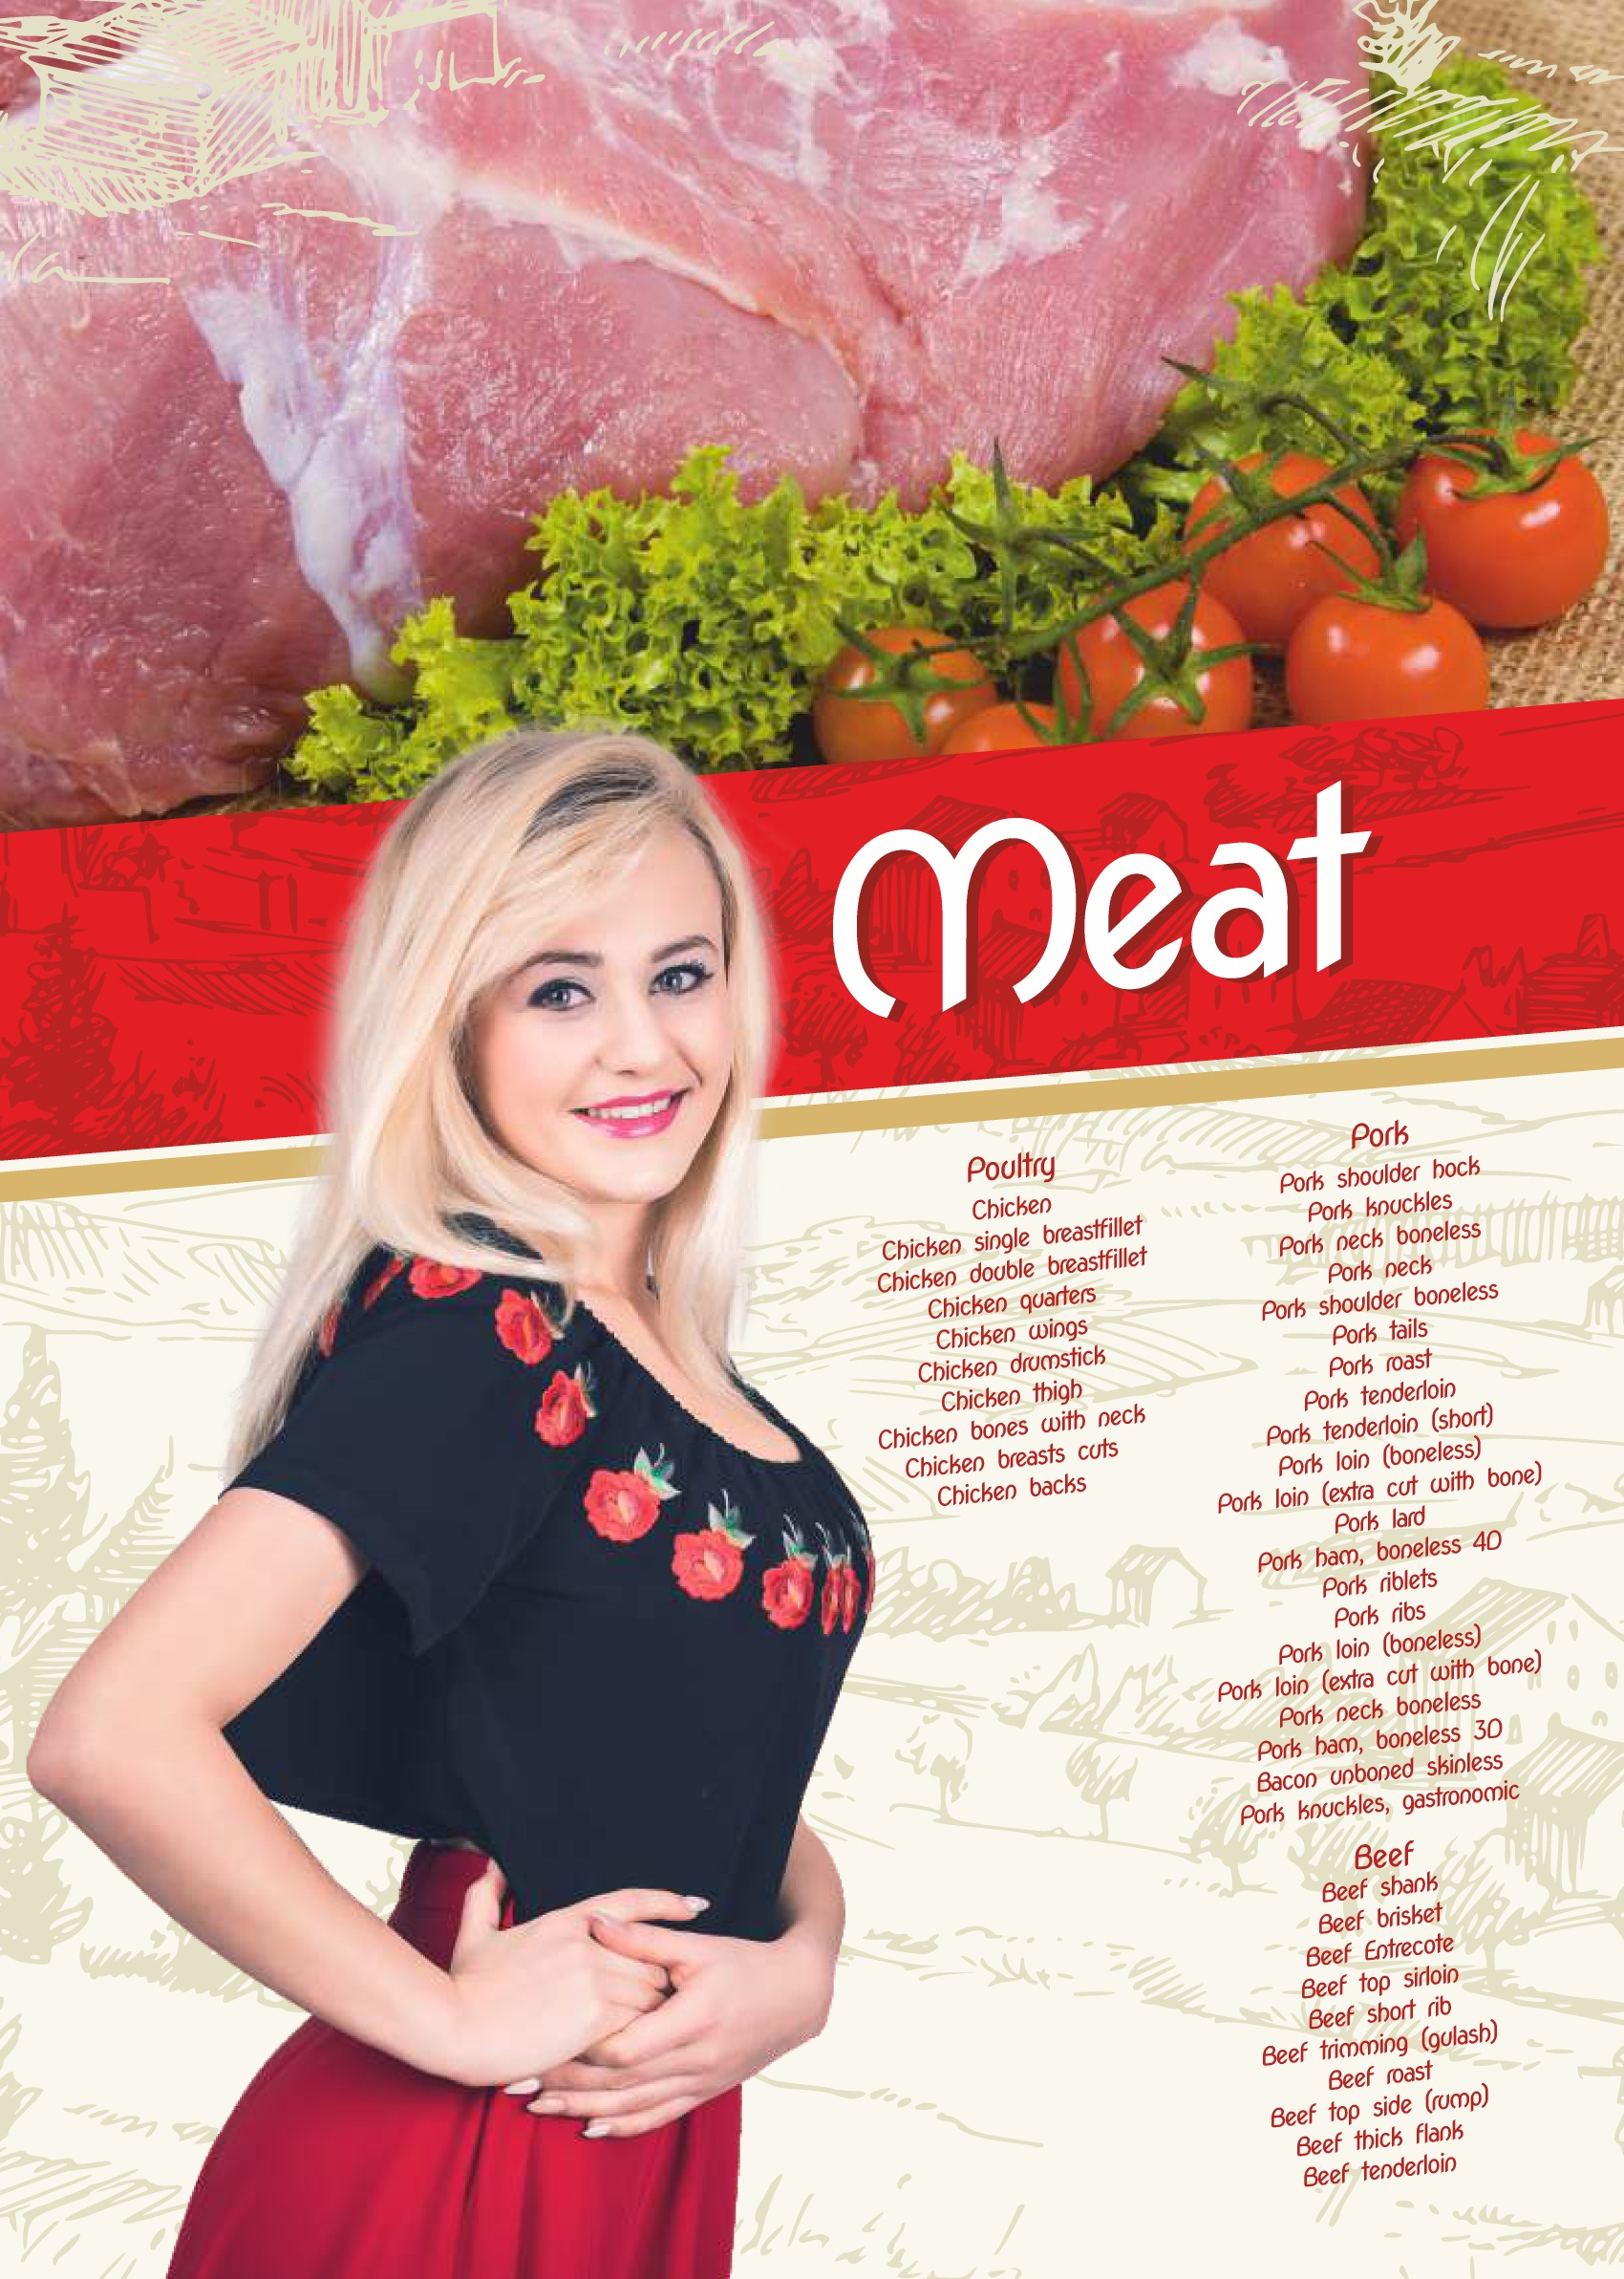 Meat-1